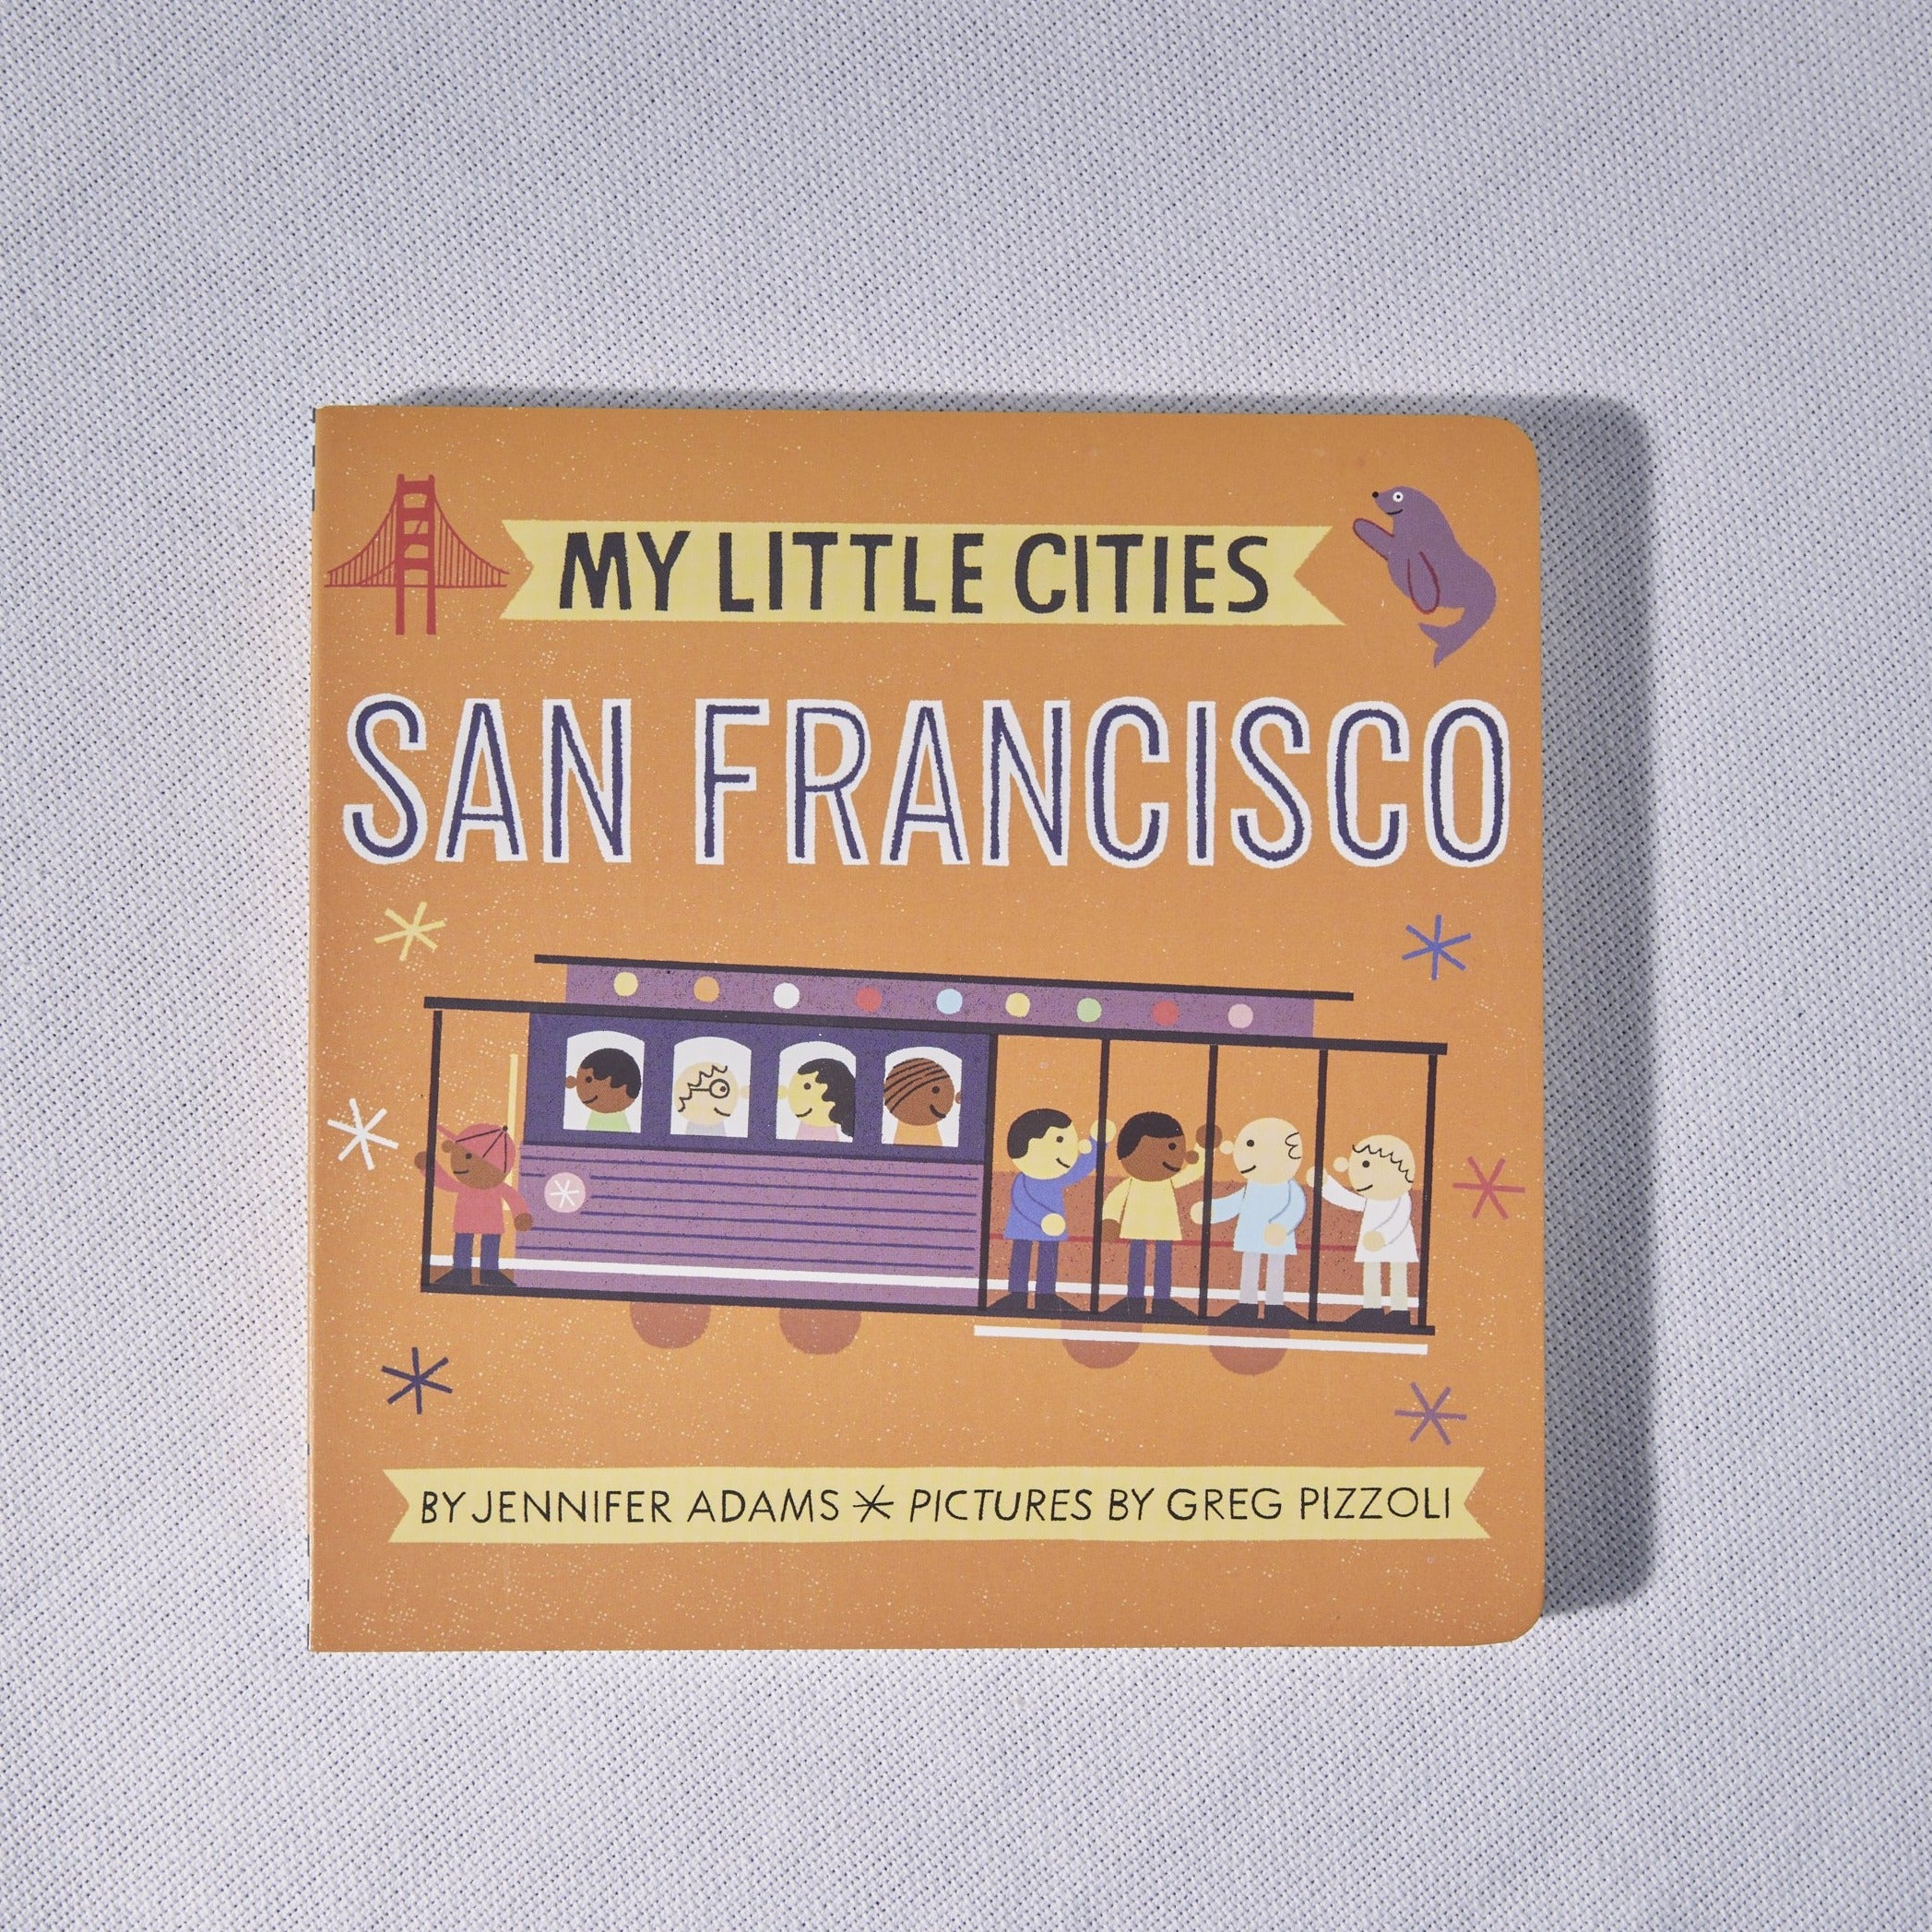 My Little Cities San Francisco Book - P I C N I C